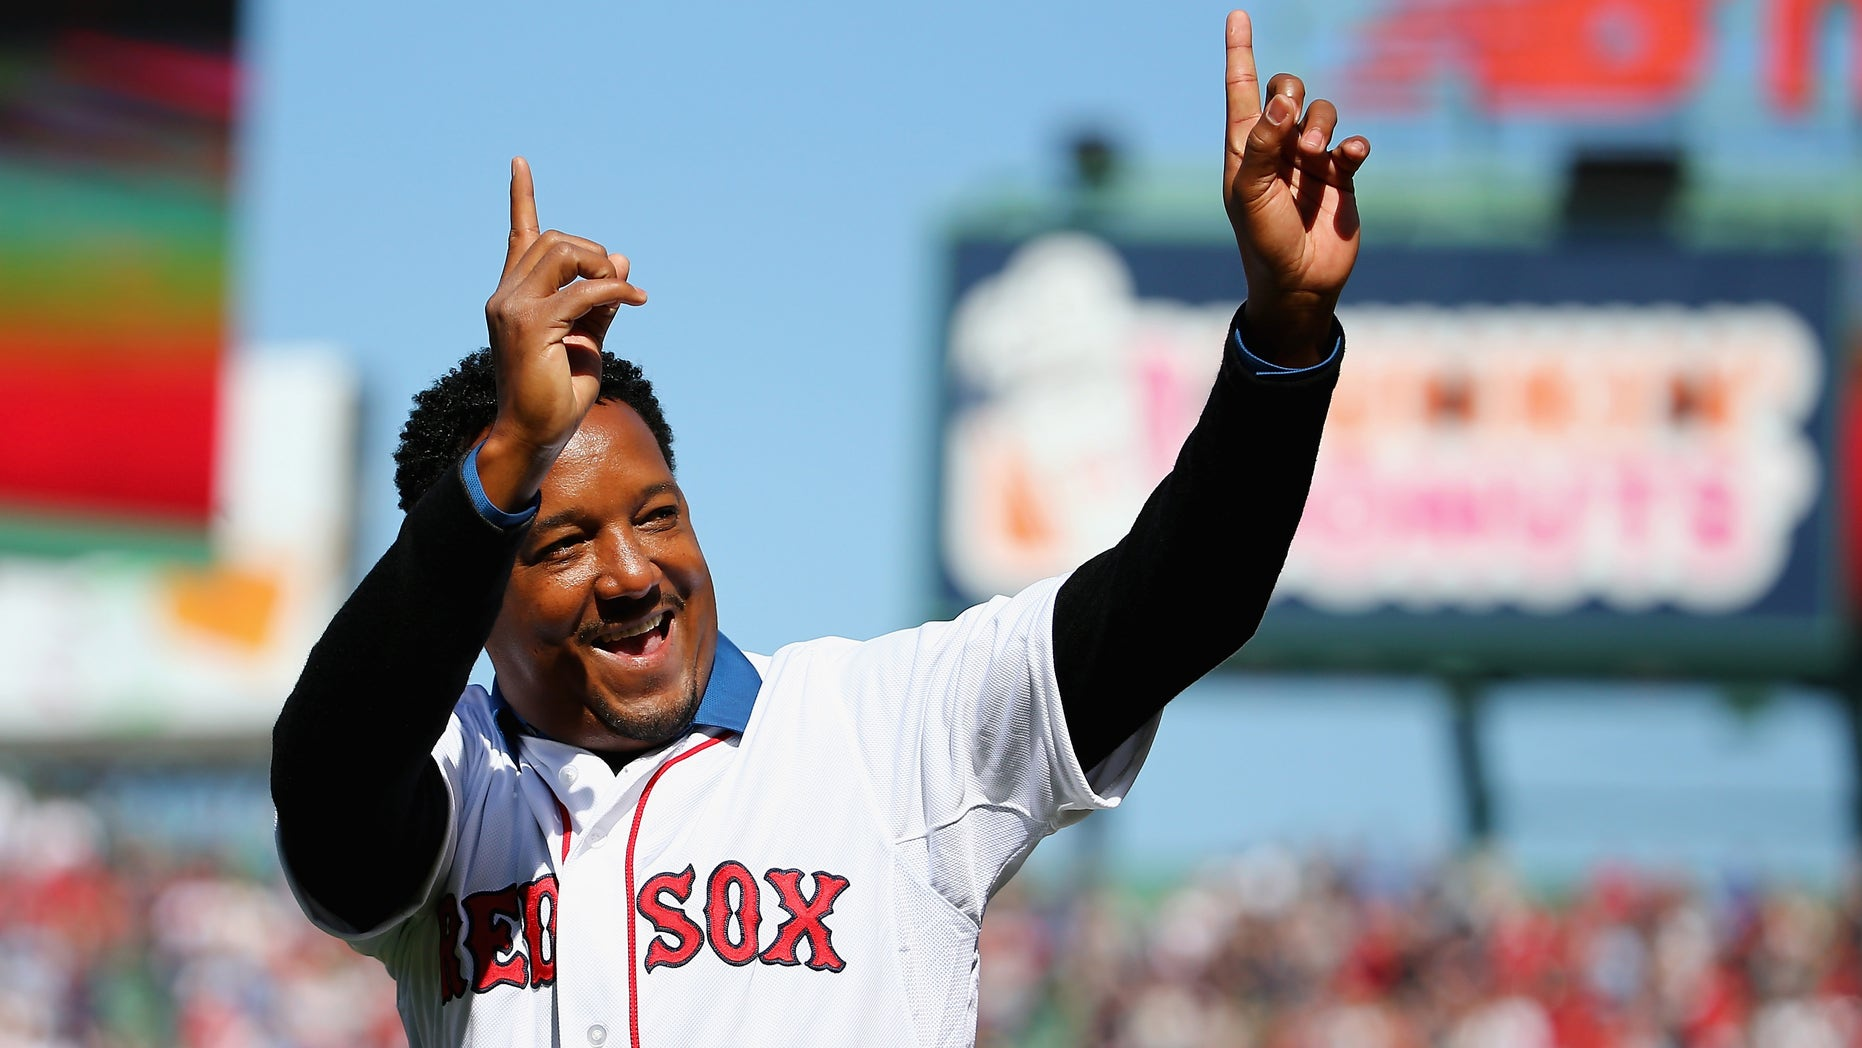 BOSTON, MA - APRIL 13:  Pedro Martinez waves to the crowd at Fenway Park before the game between the Boston Red Sox and the Washington Nationals on April 13, 2015 in Boston, Massachusetts.  (Photo by Maddie Meyer/Getty Images)